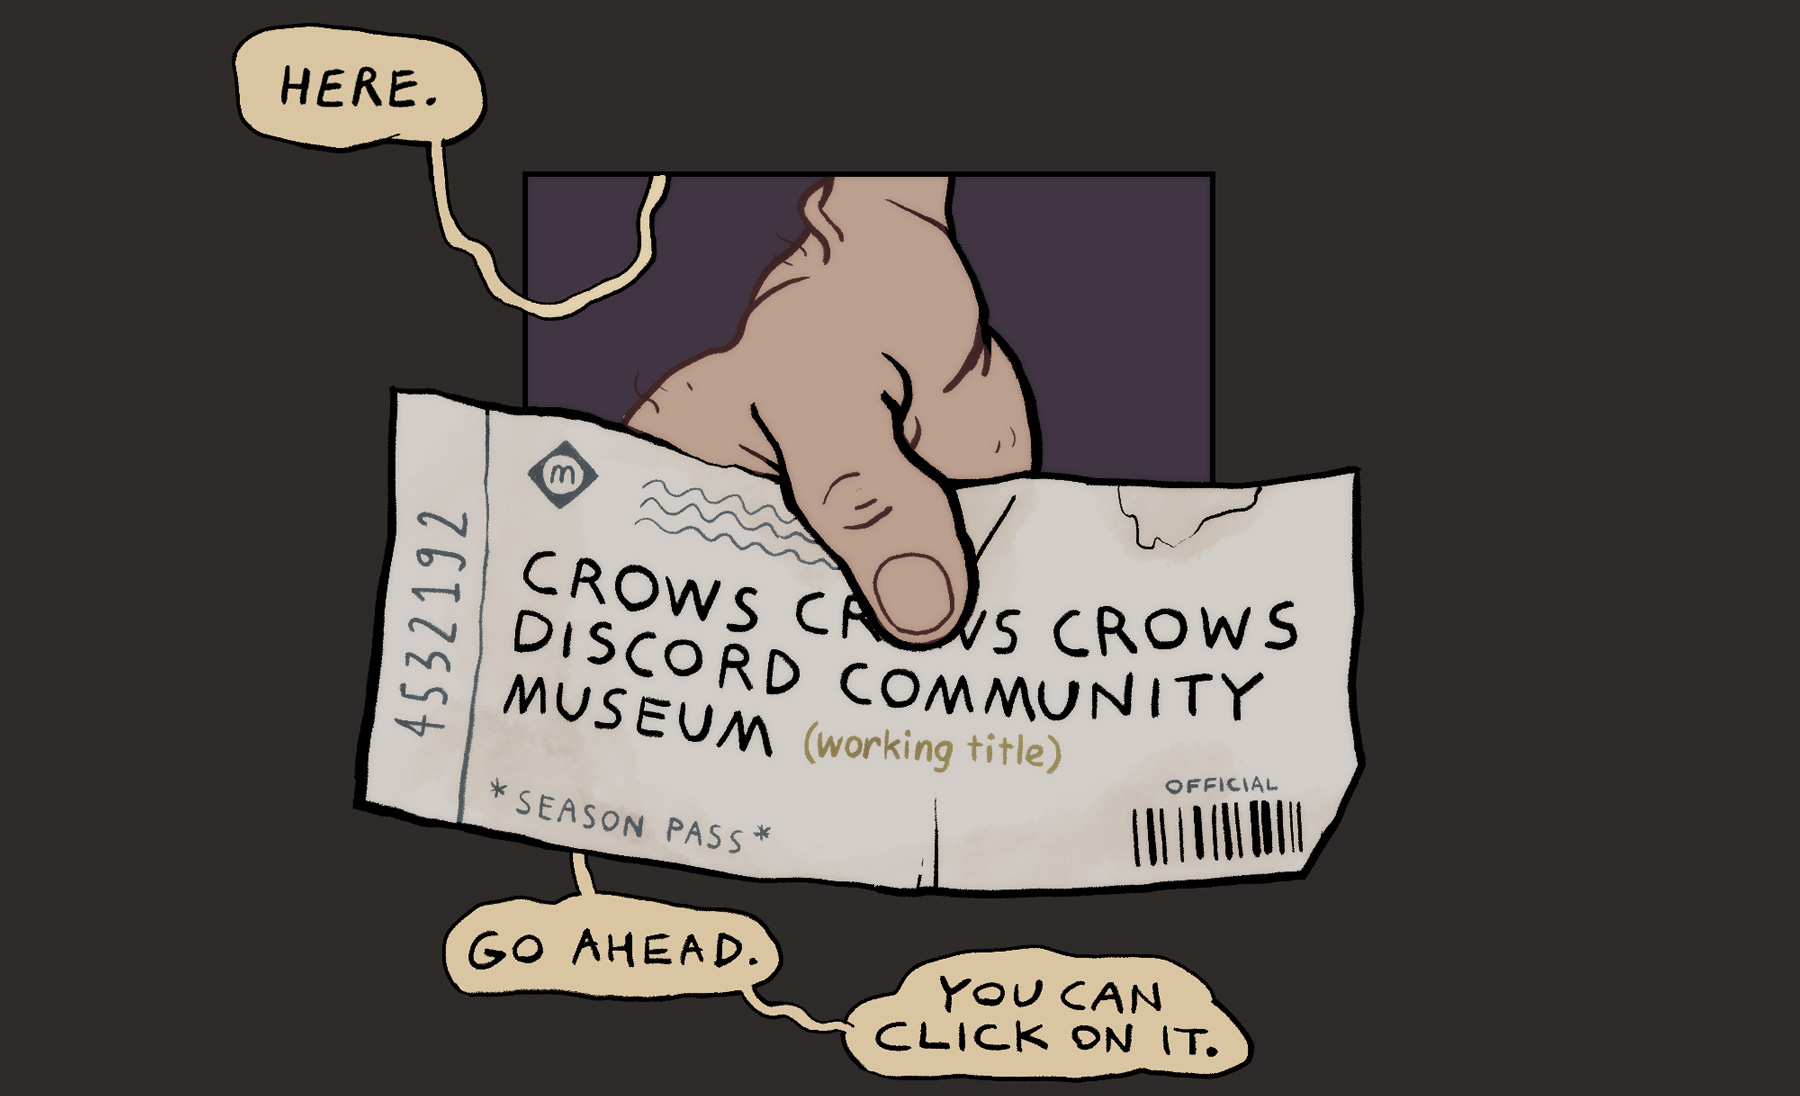 Ticket to the Community Museum